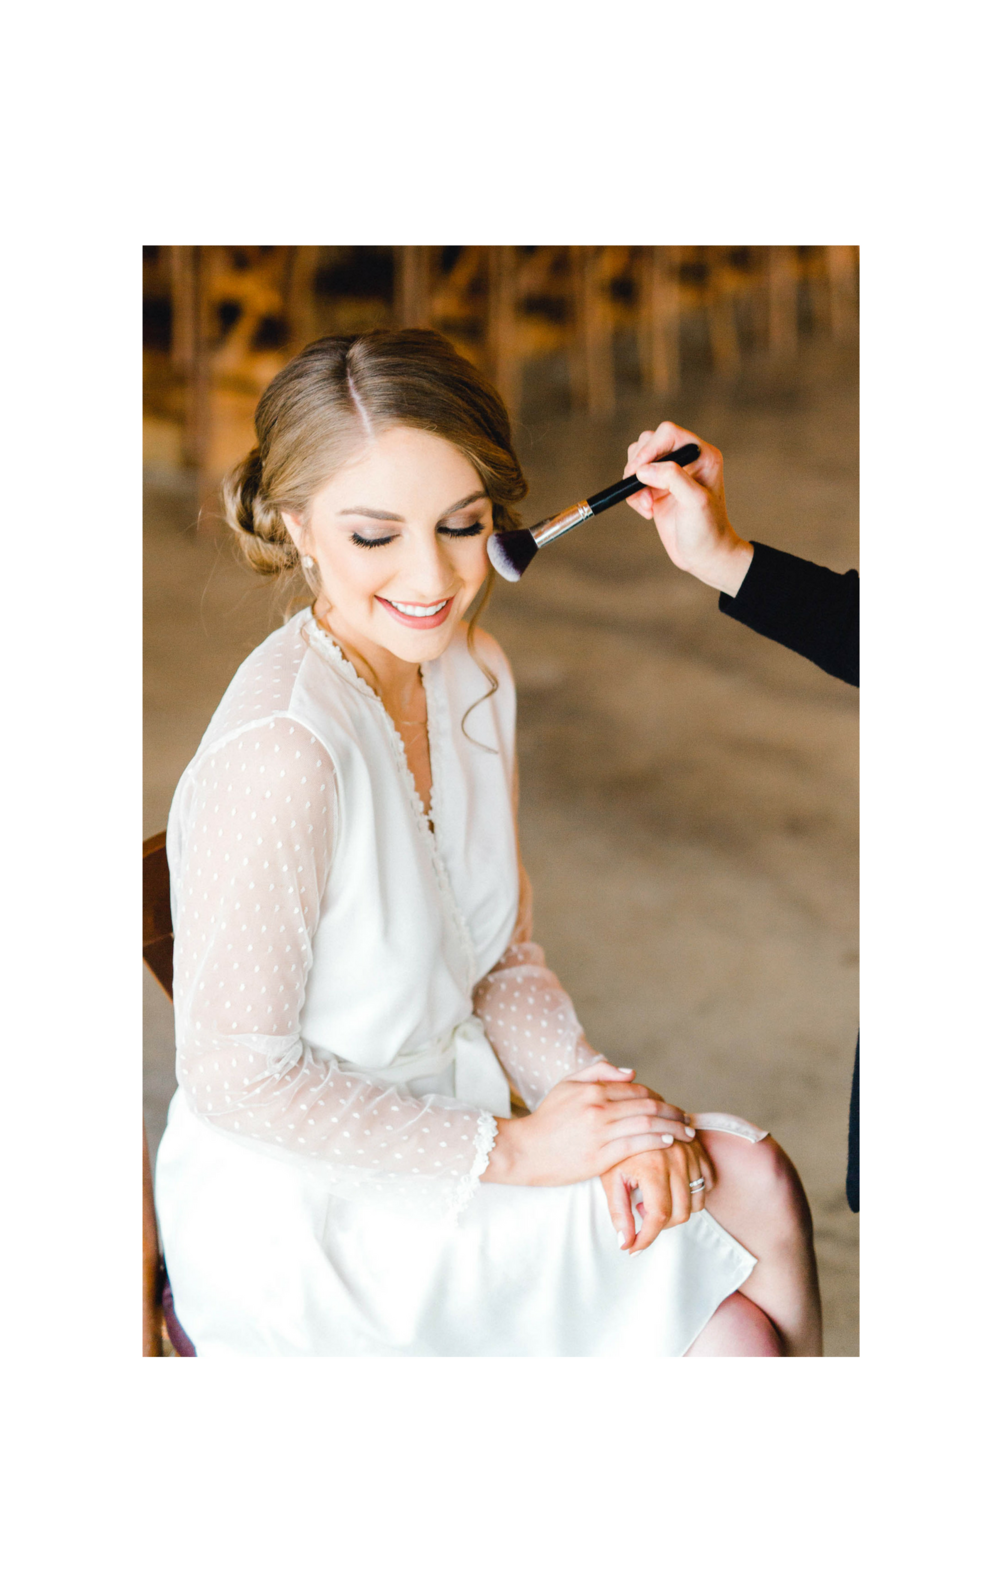 Styling & Touch Ups  - Styling and touch ups on your wedding day, during bridal portraits and boudoir photoshoot.                                                                    Ask for details